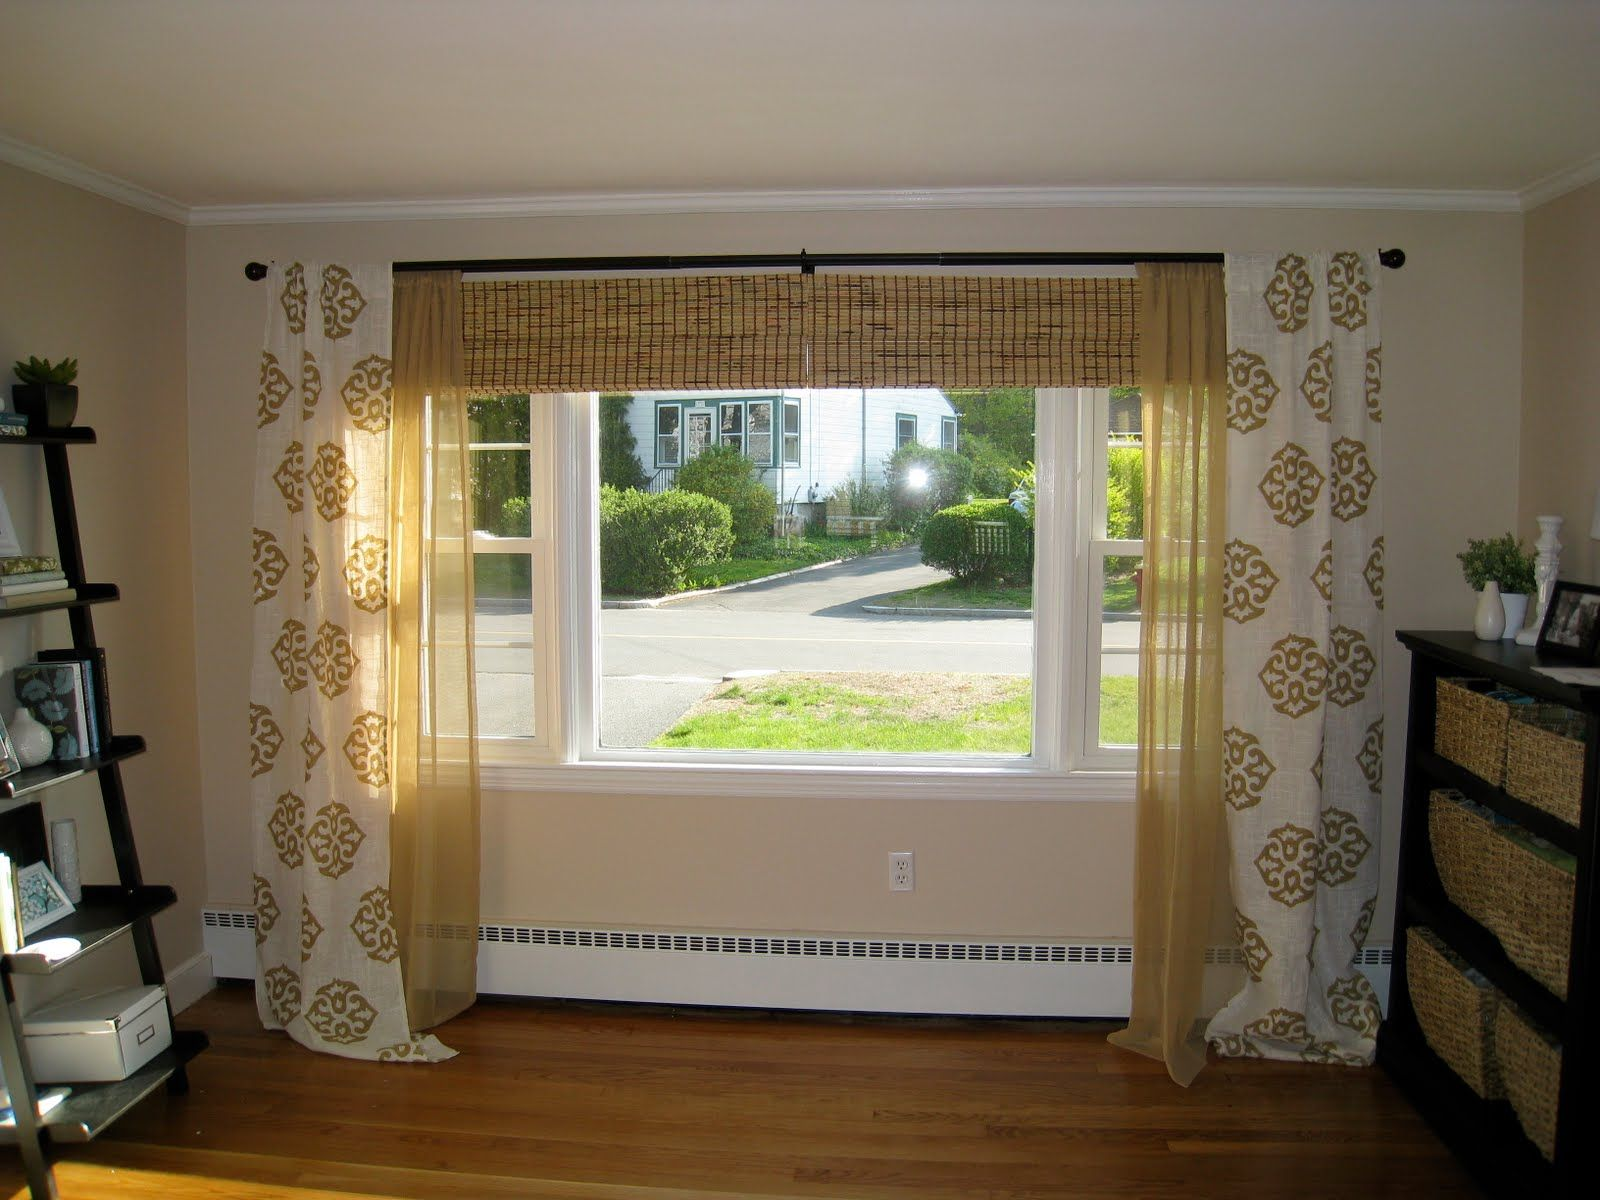 door windows living room curtains window treatments decorating living room window treatments custom drapery ideas window treatments living room living - Living Room Window Coverings